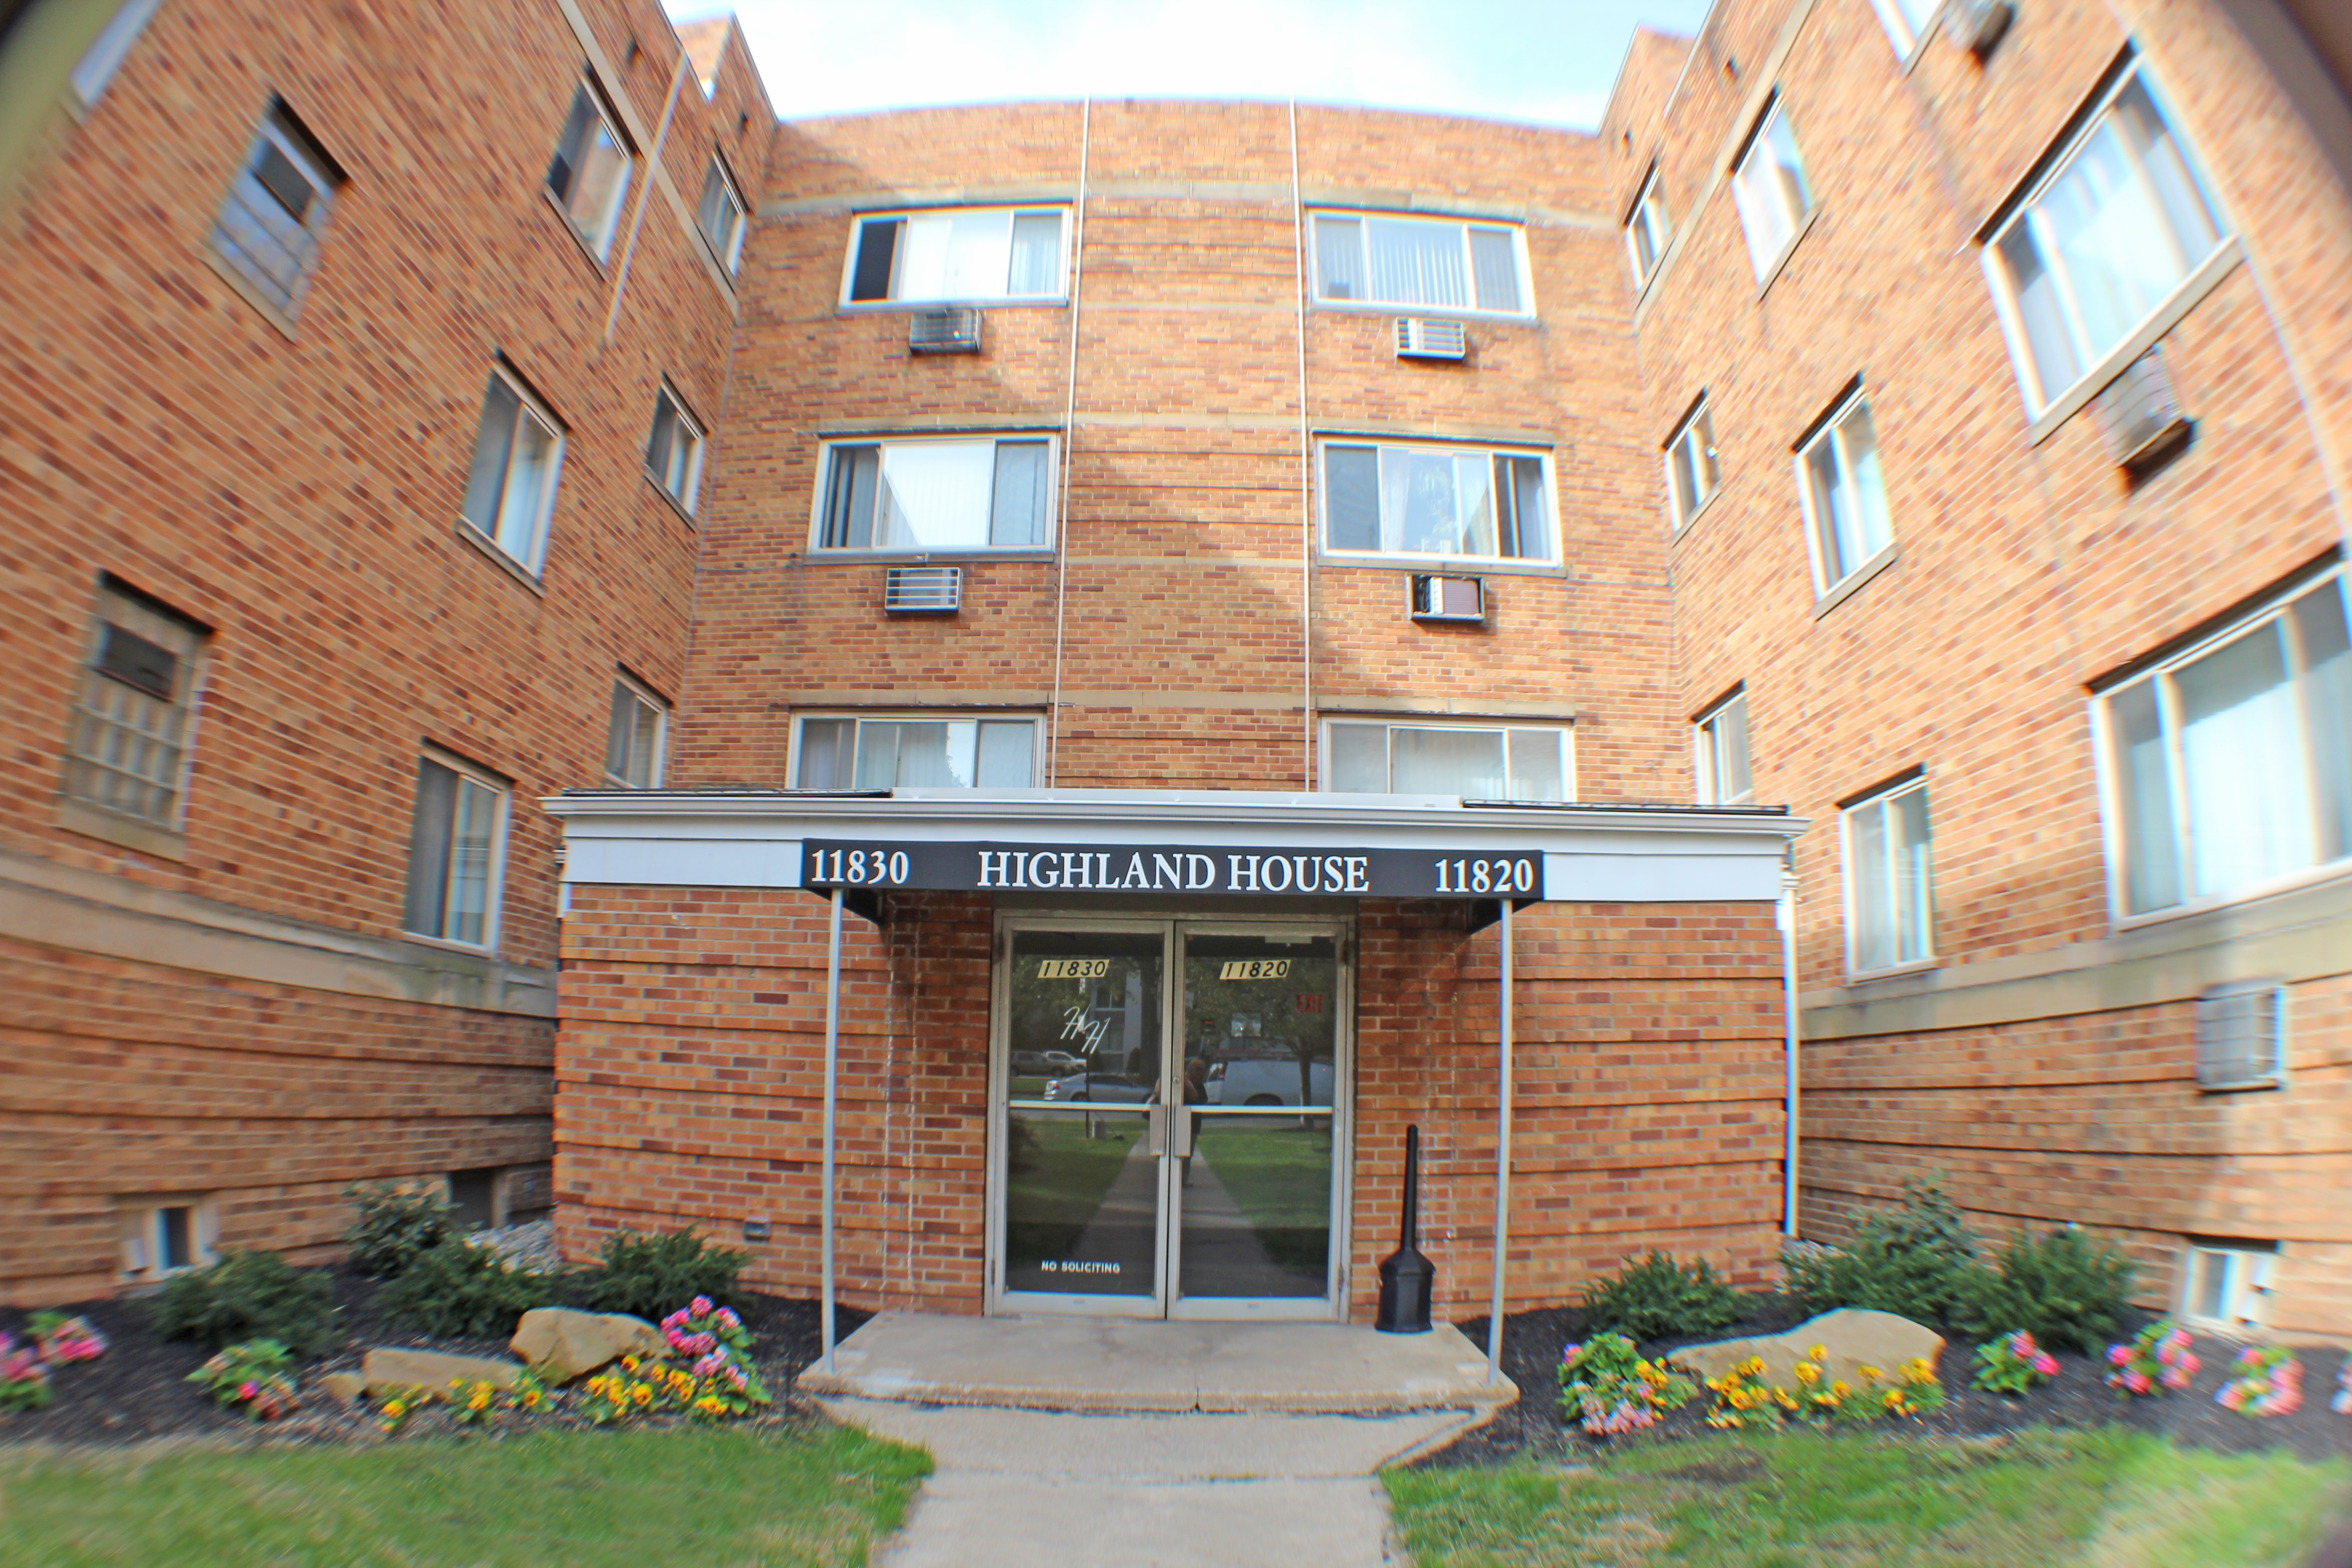 HIGHLAND HOUSE APARTMENTS 11810 Lake Ave Lakewood, OH 44107 (216) 227 9191  Emergency: (216) 227 9191 OFFICE HOURS Mon Fri: 9:00 AM 5:00 PM Sat Sun:  Closed